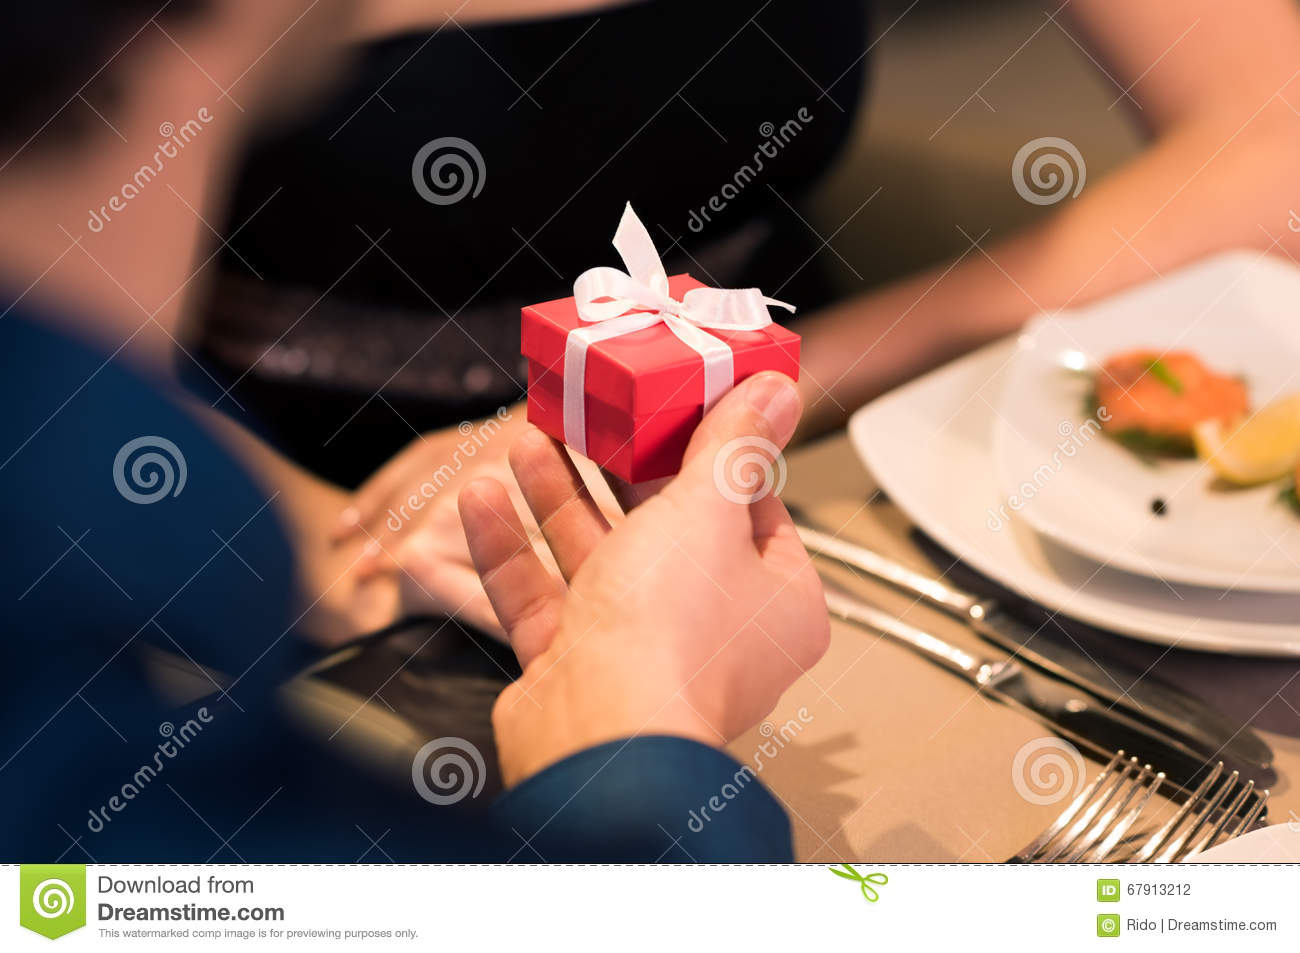 Young Men Gifting A Small Red Box To Woman Husband Give Present Wife On Her Birthday Close Up Of Boyfriend Hand Makes Marriage Proposal